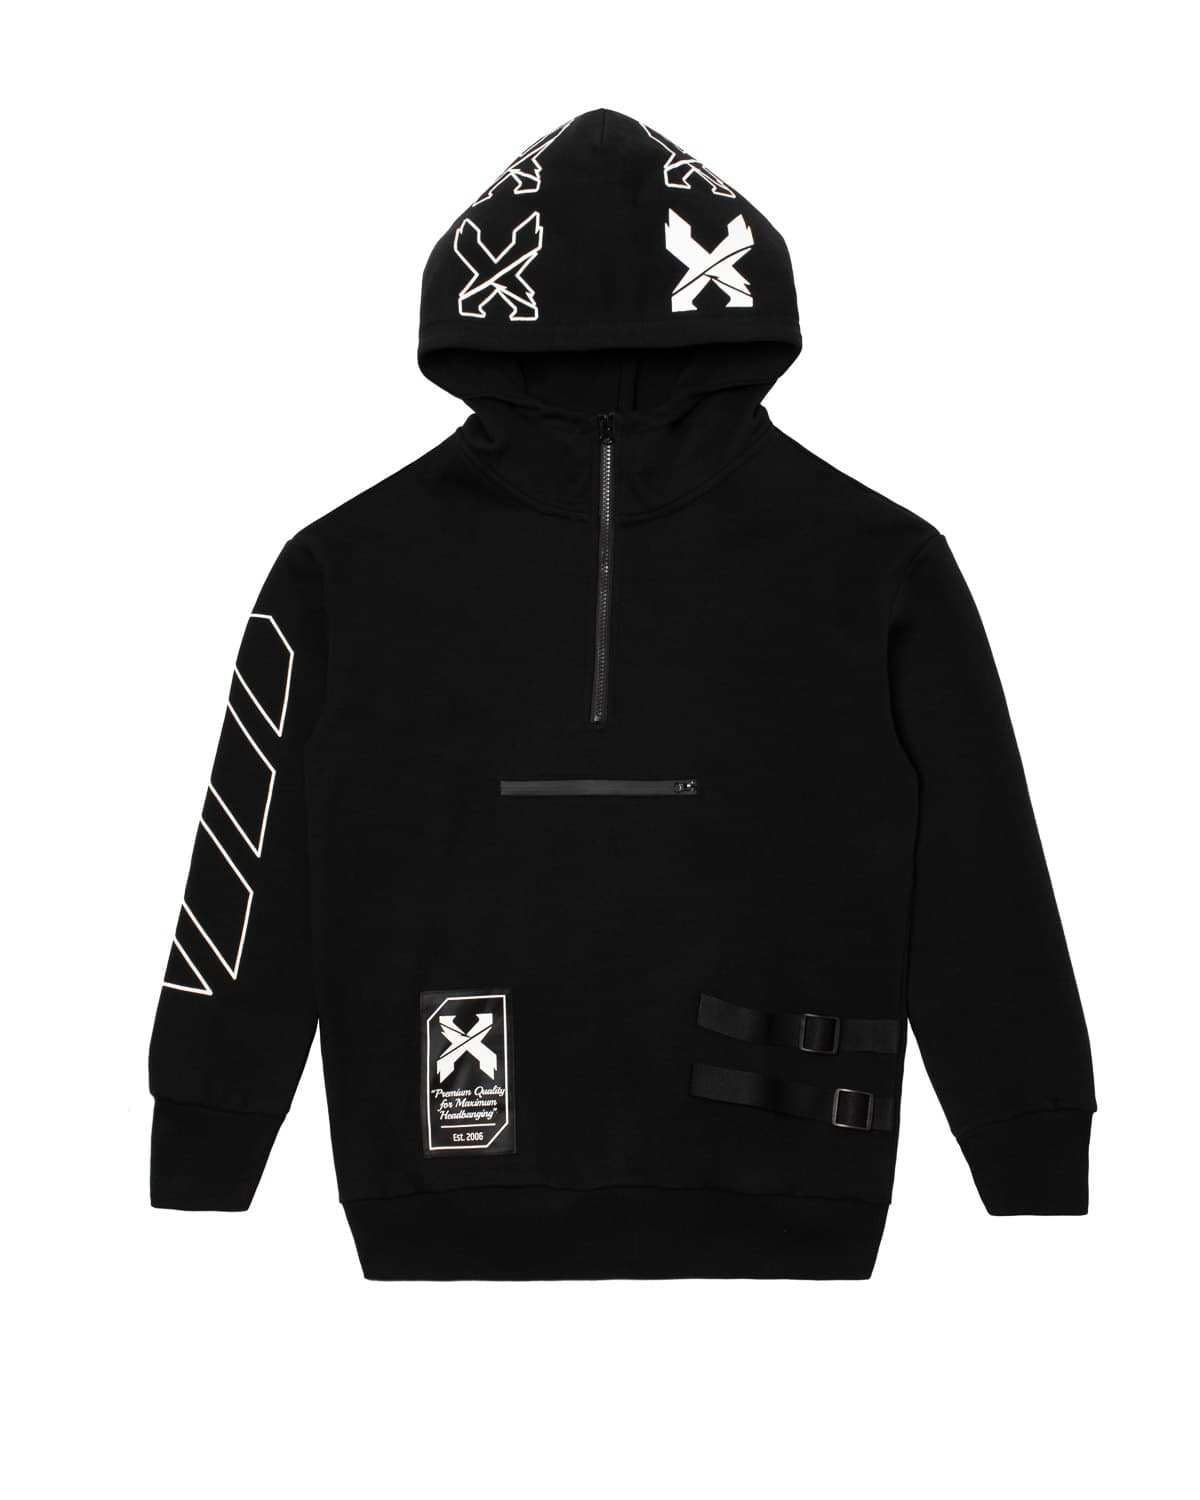 Excision Half Zip Pull Over Tech Hoodie - Black